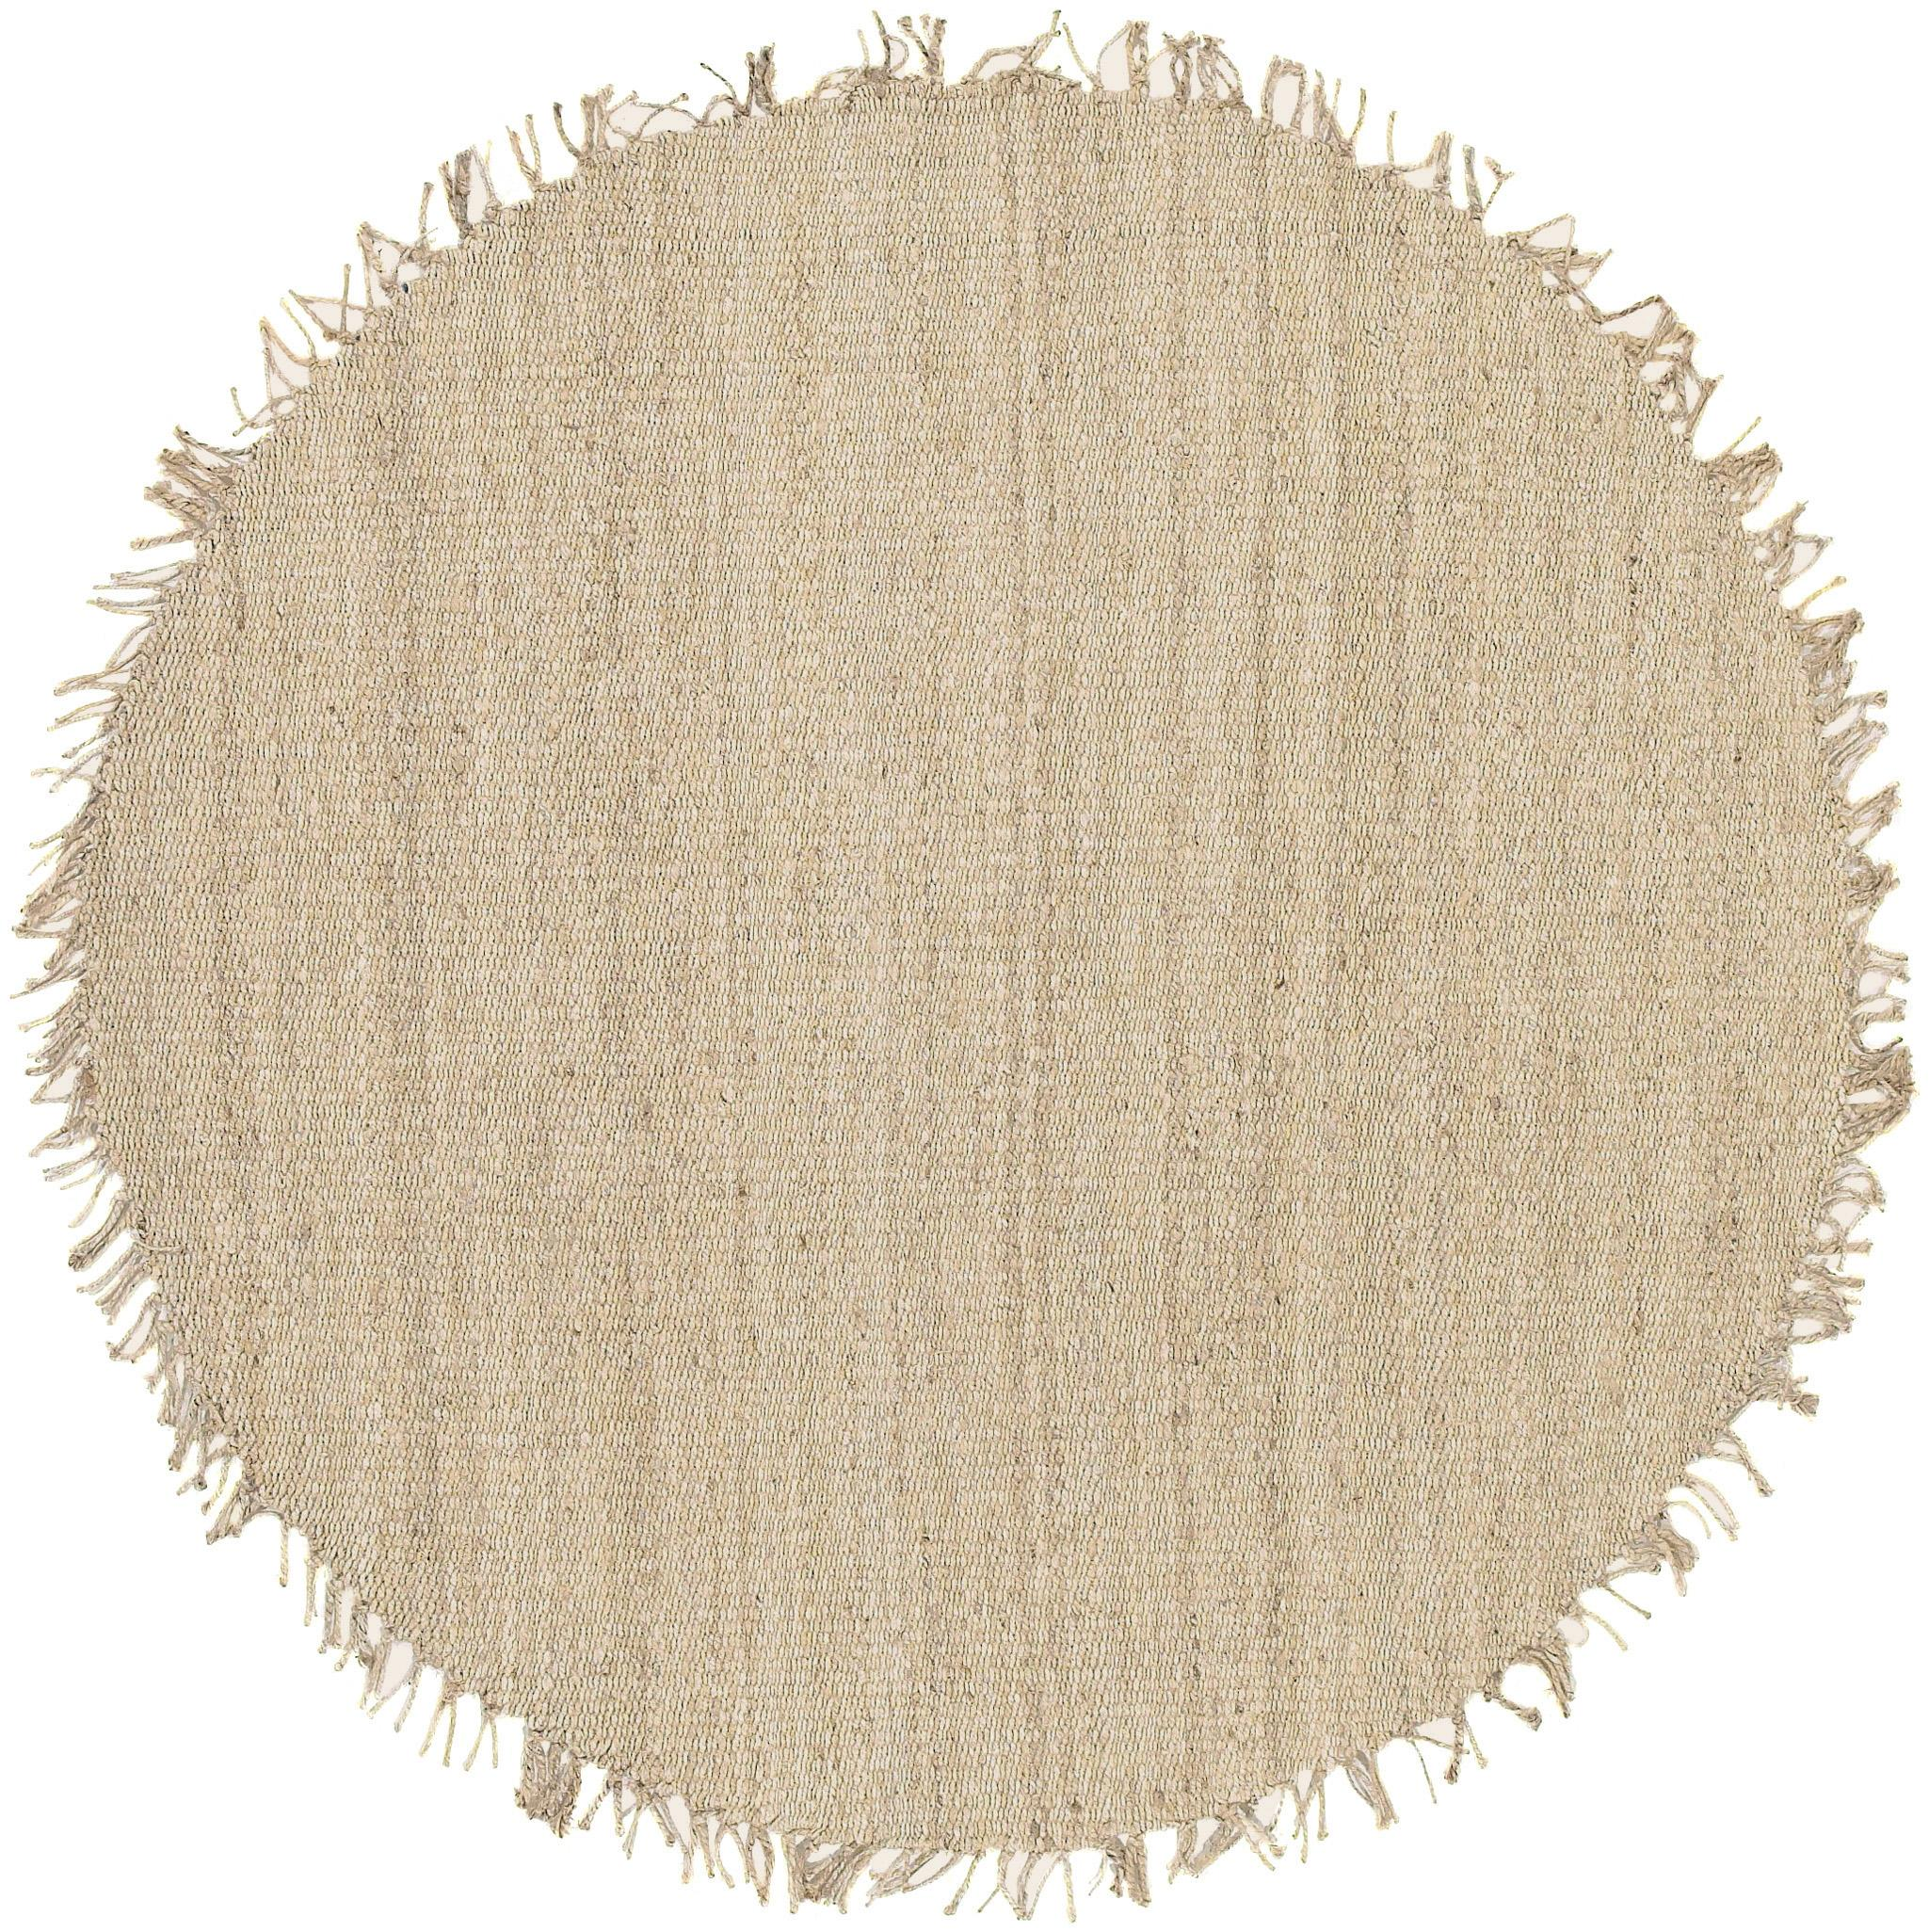 Jute Bleached 6' Round by Surya at SuperStore